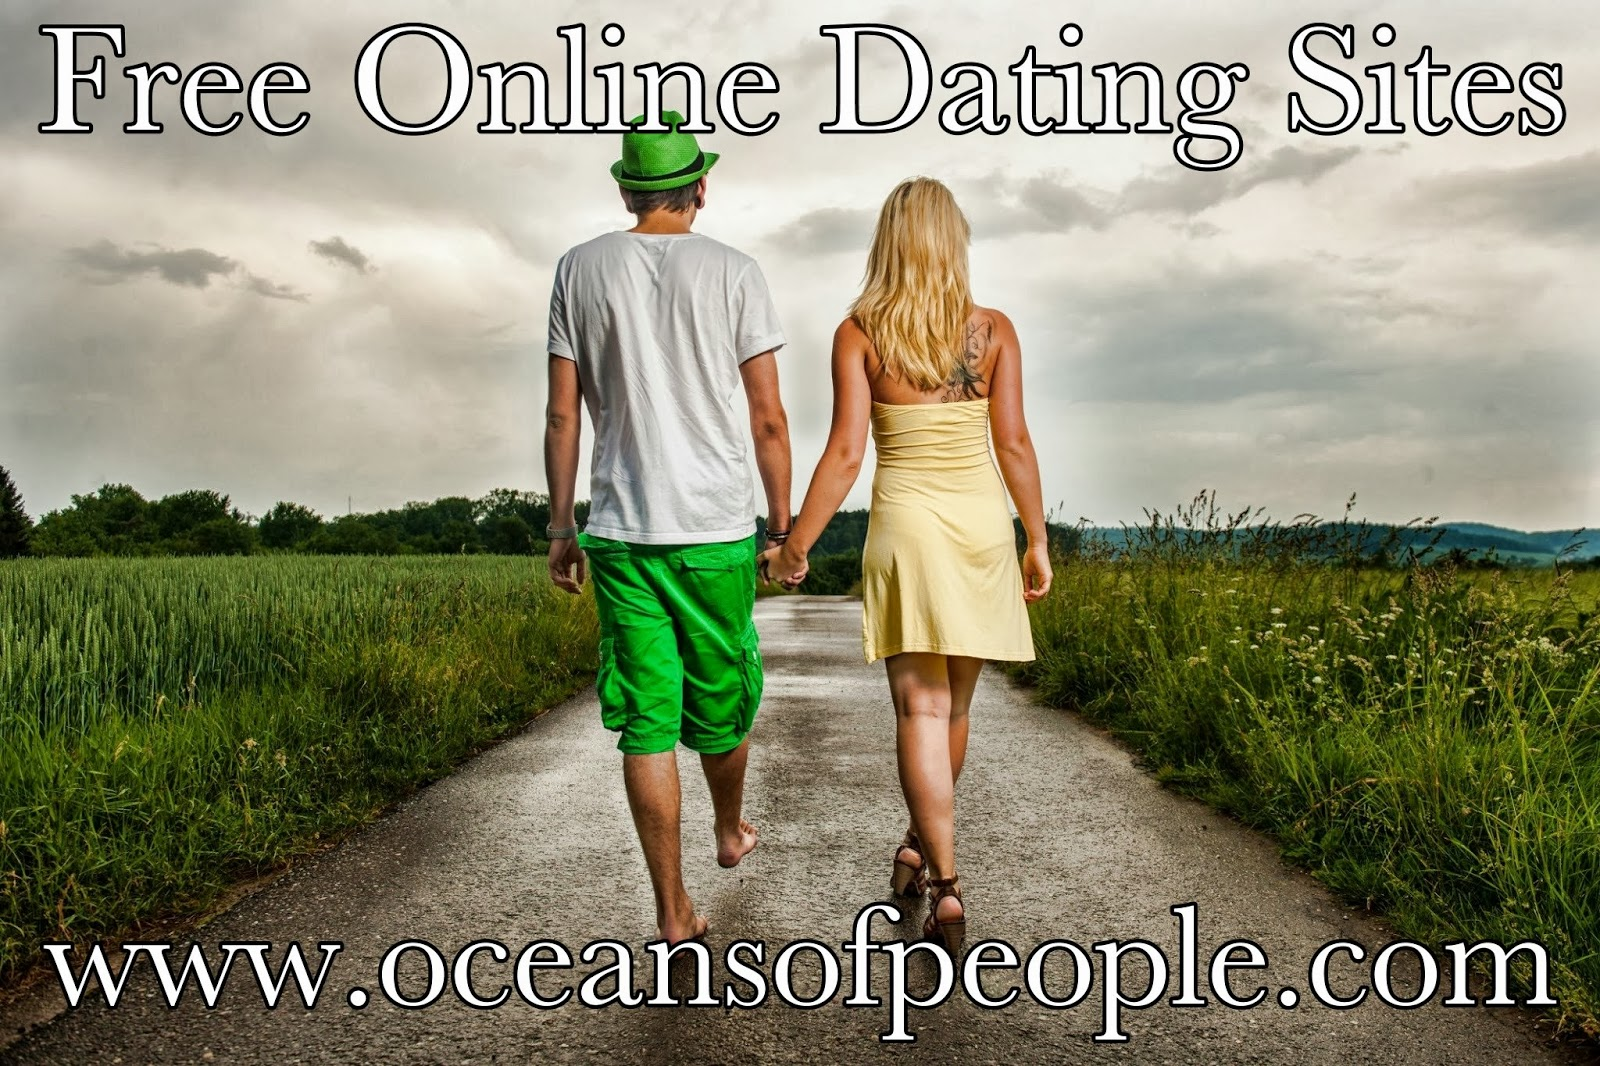 Vietnamesische online-dating-sites